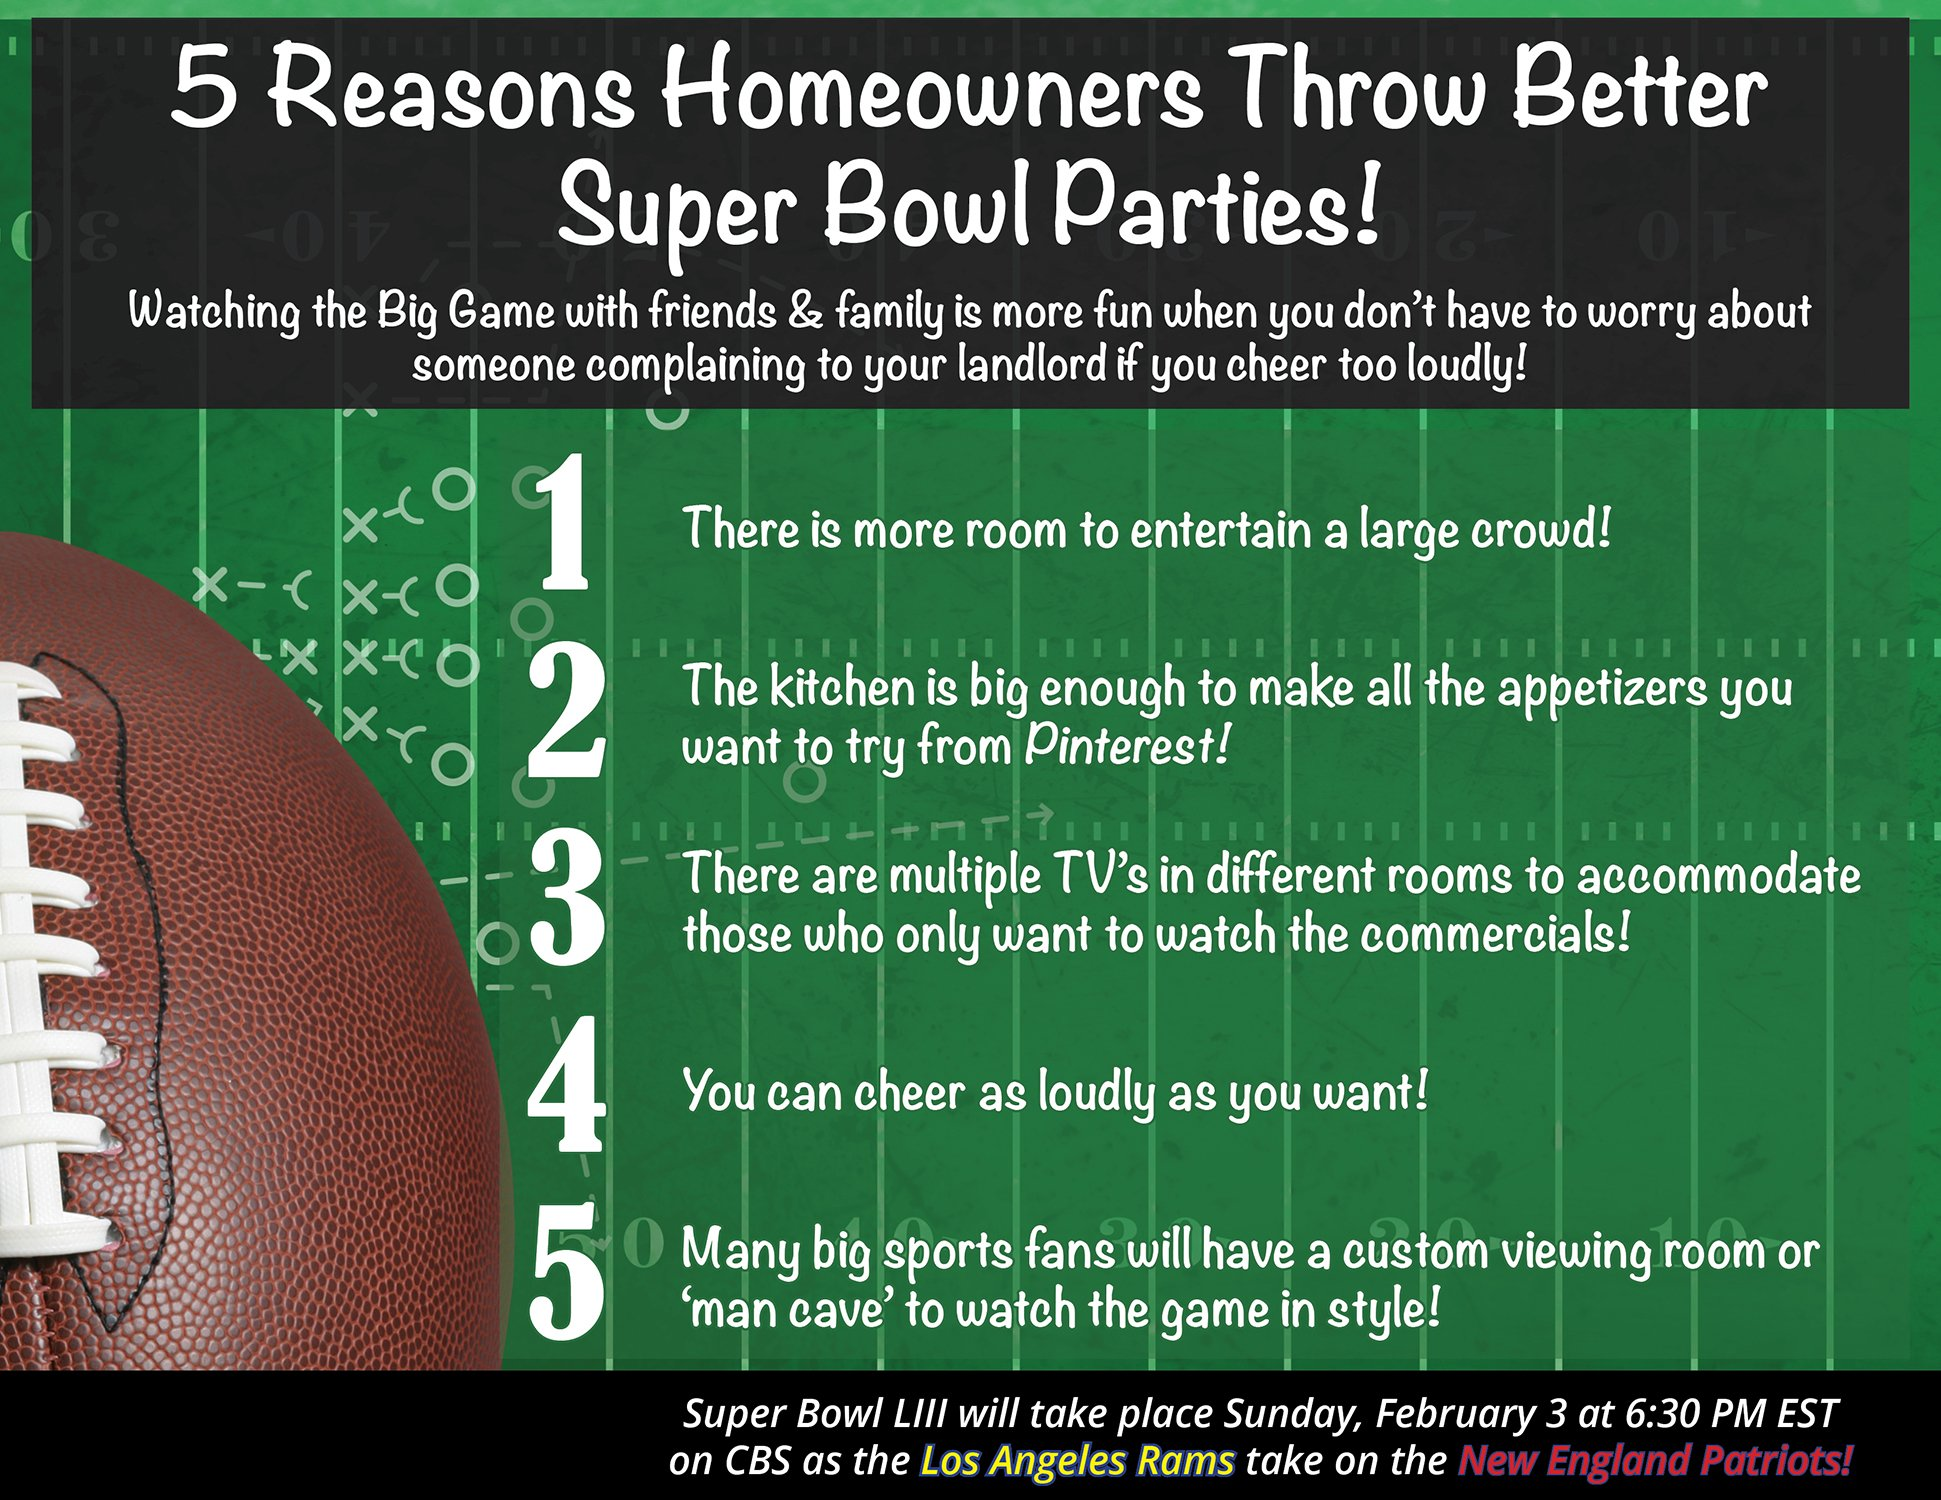 5 Reasons Homeowners Throw the Best Super Bowl Parties! [INFOGRAPHIC] | Simplifying The Market